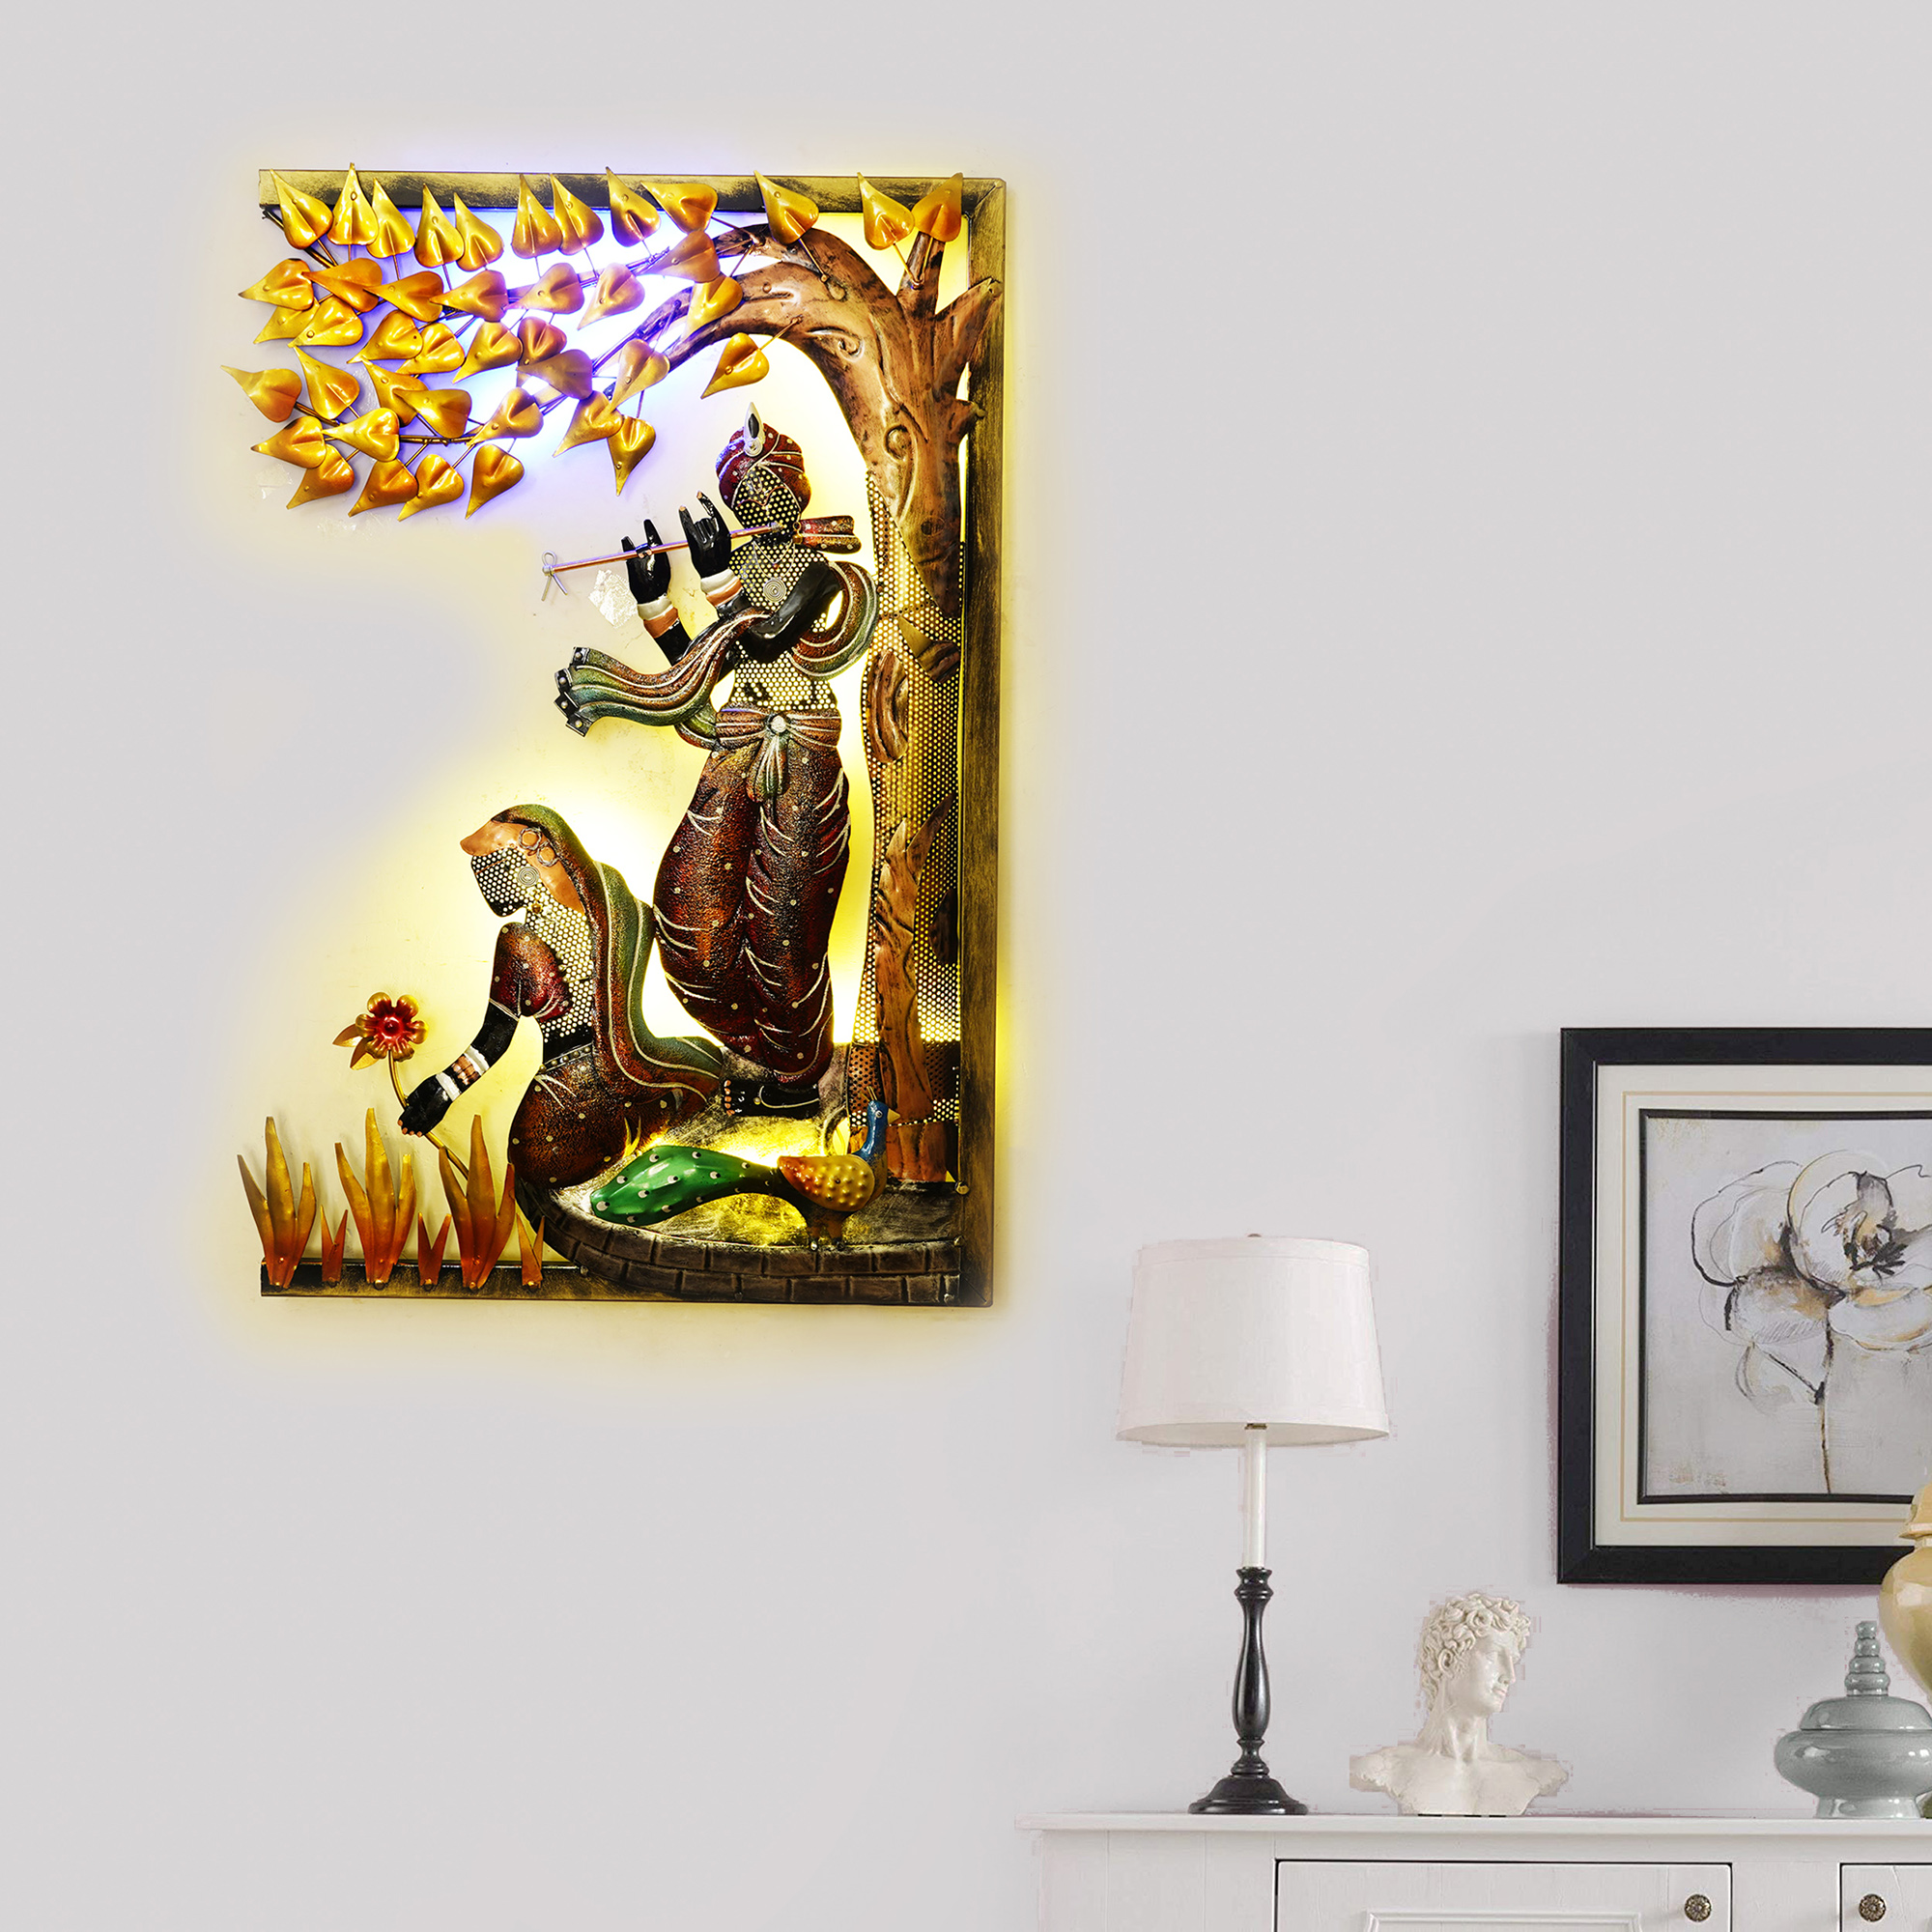 Lord Krishna Playing Flute Under Tree with Radha Ji Handcrafted Iron Wall Hanging with Background LEDs Indian Home Decor